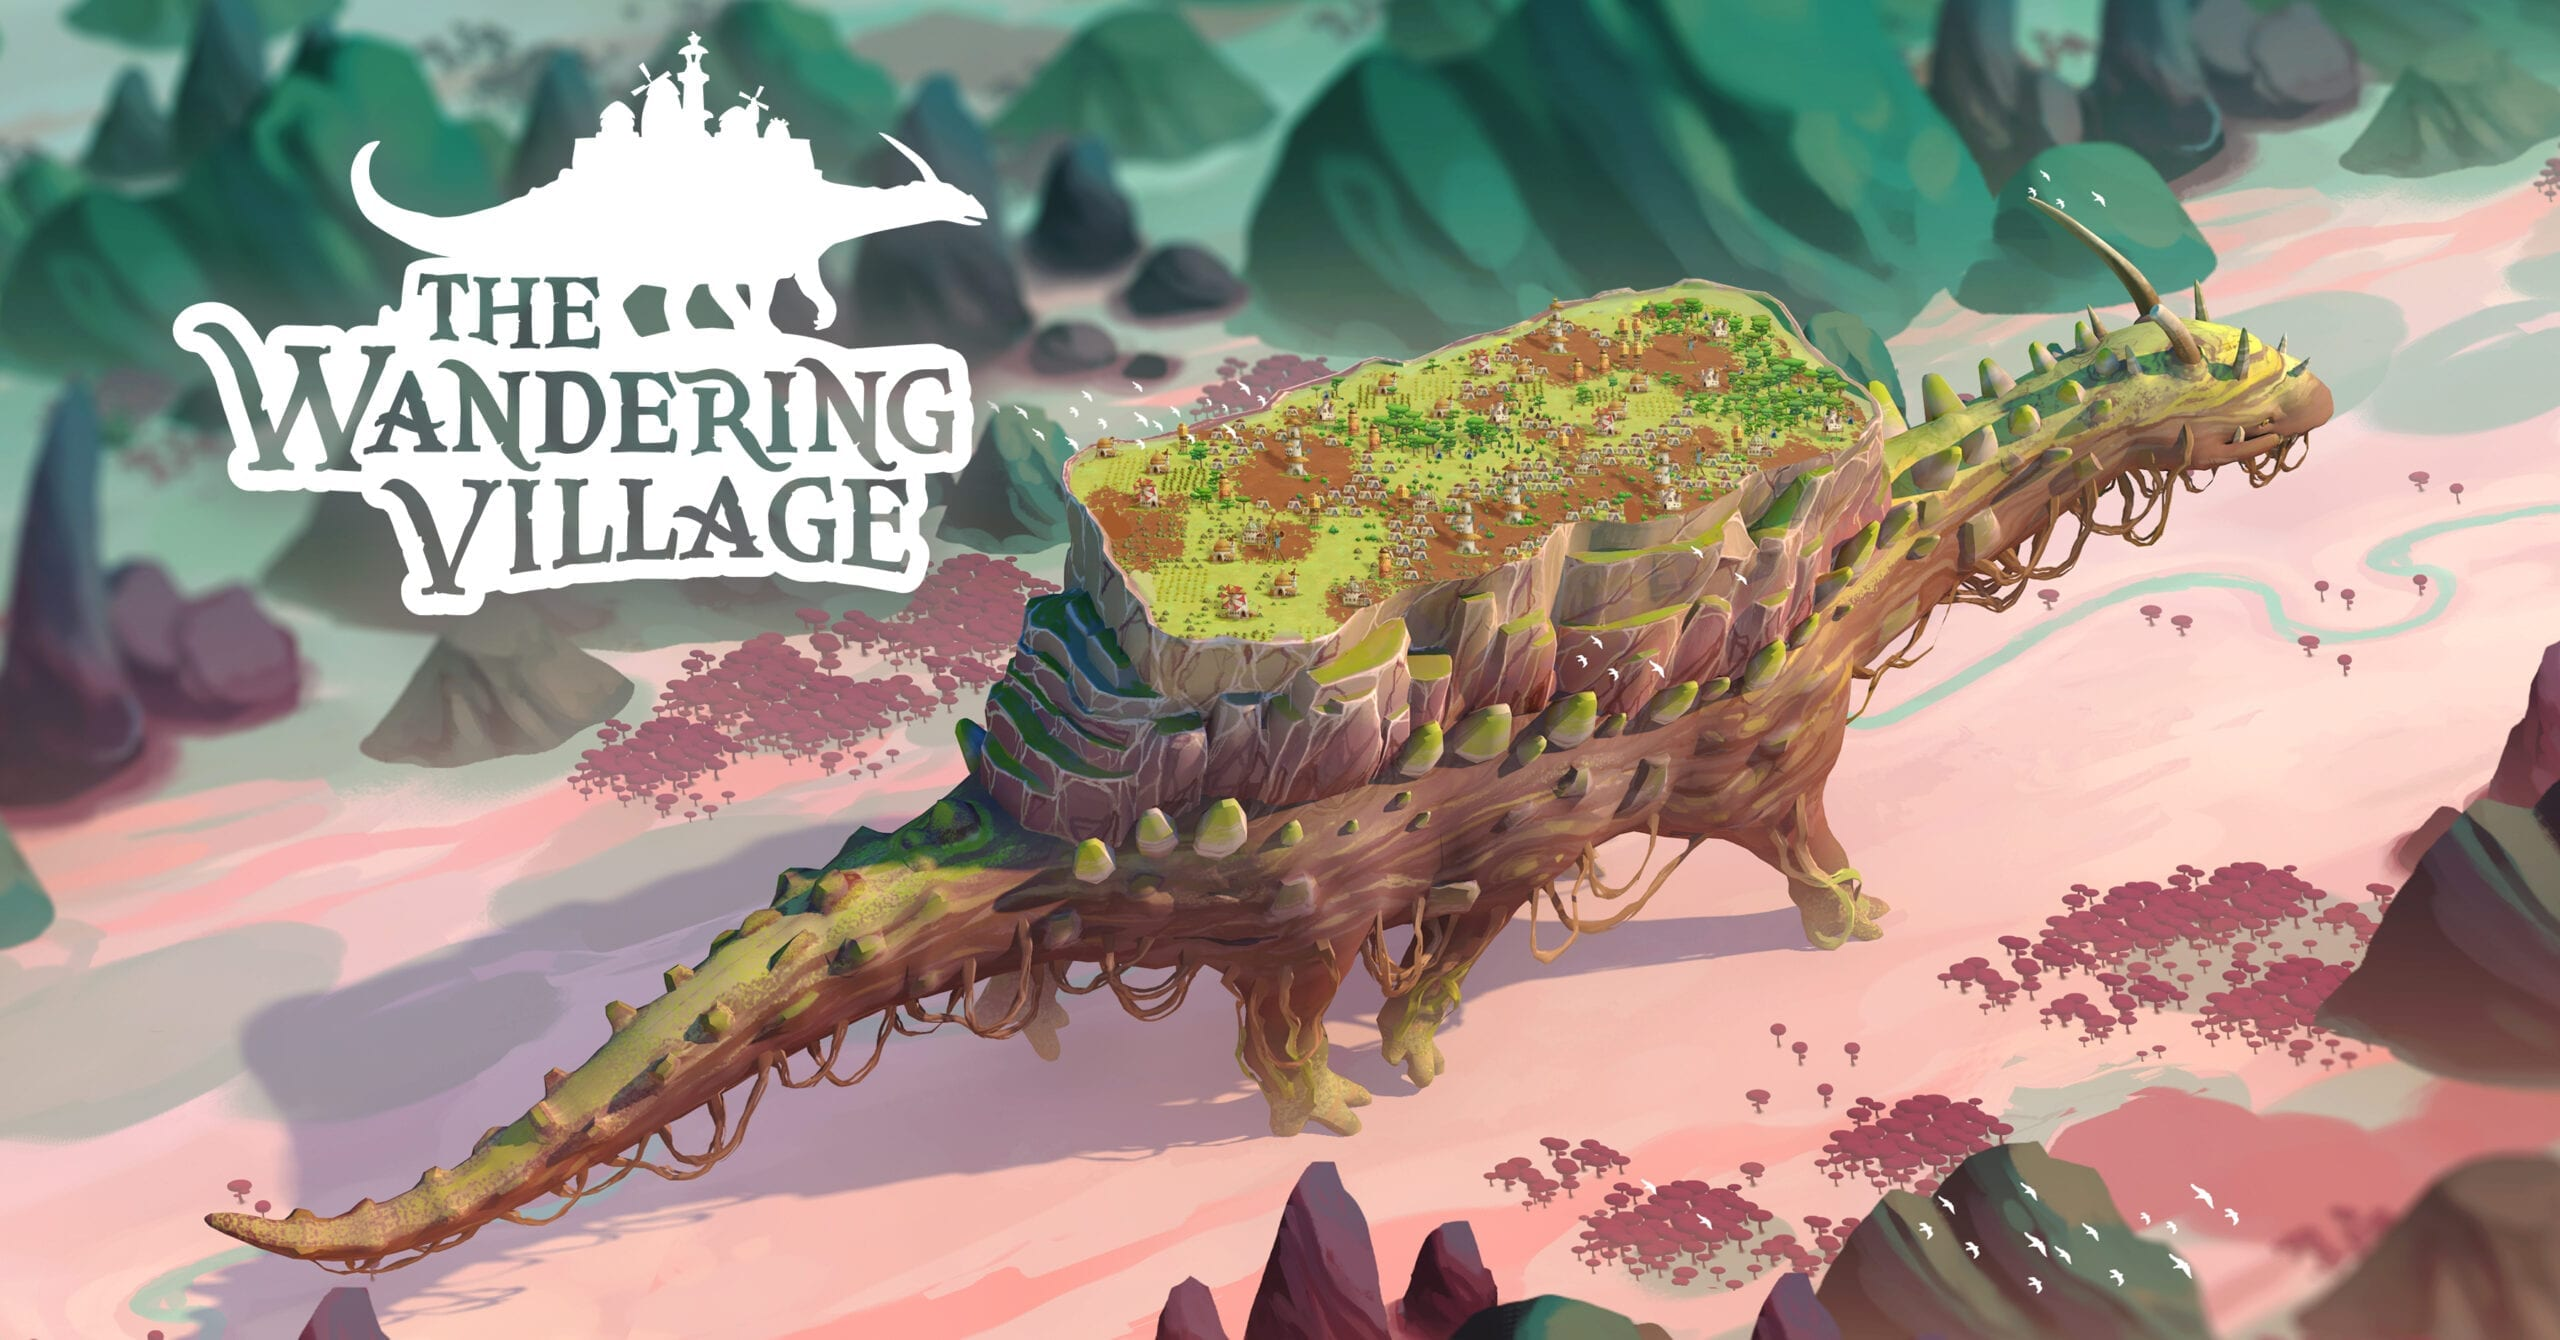 Build & Survive Atop A Giant Creature In 'The Wandering Village'